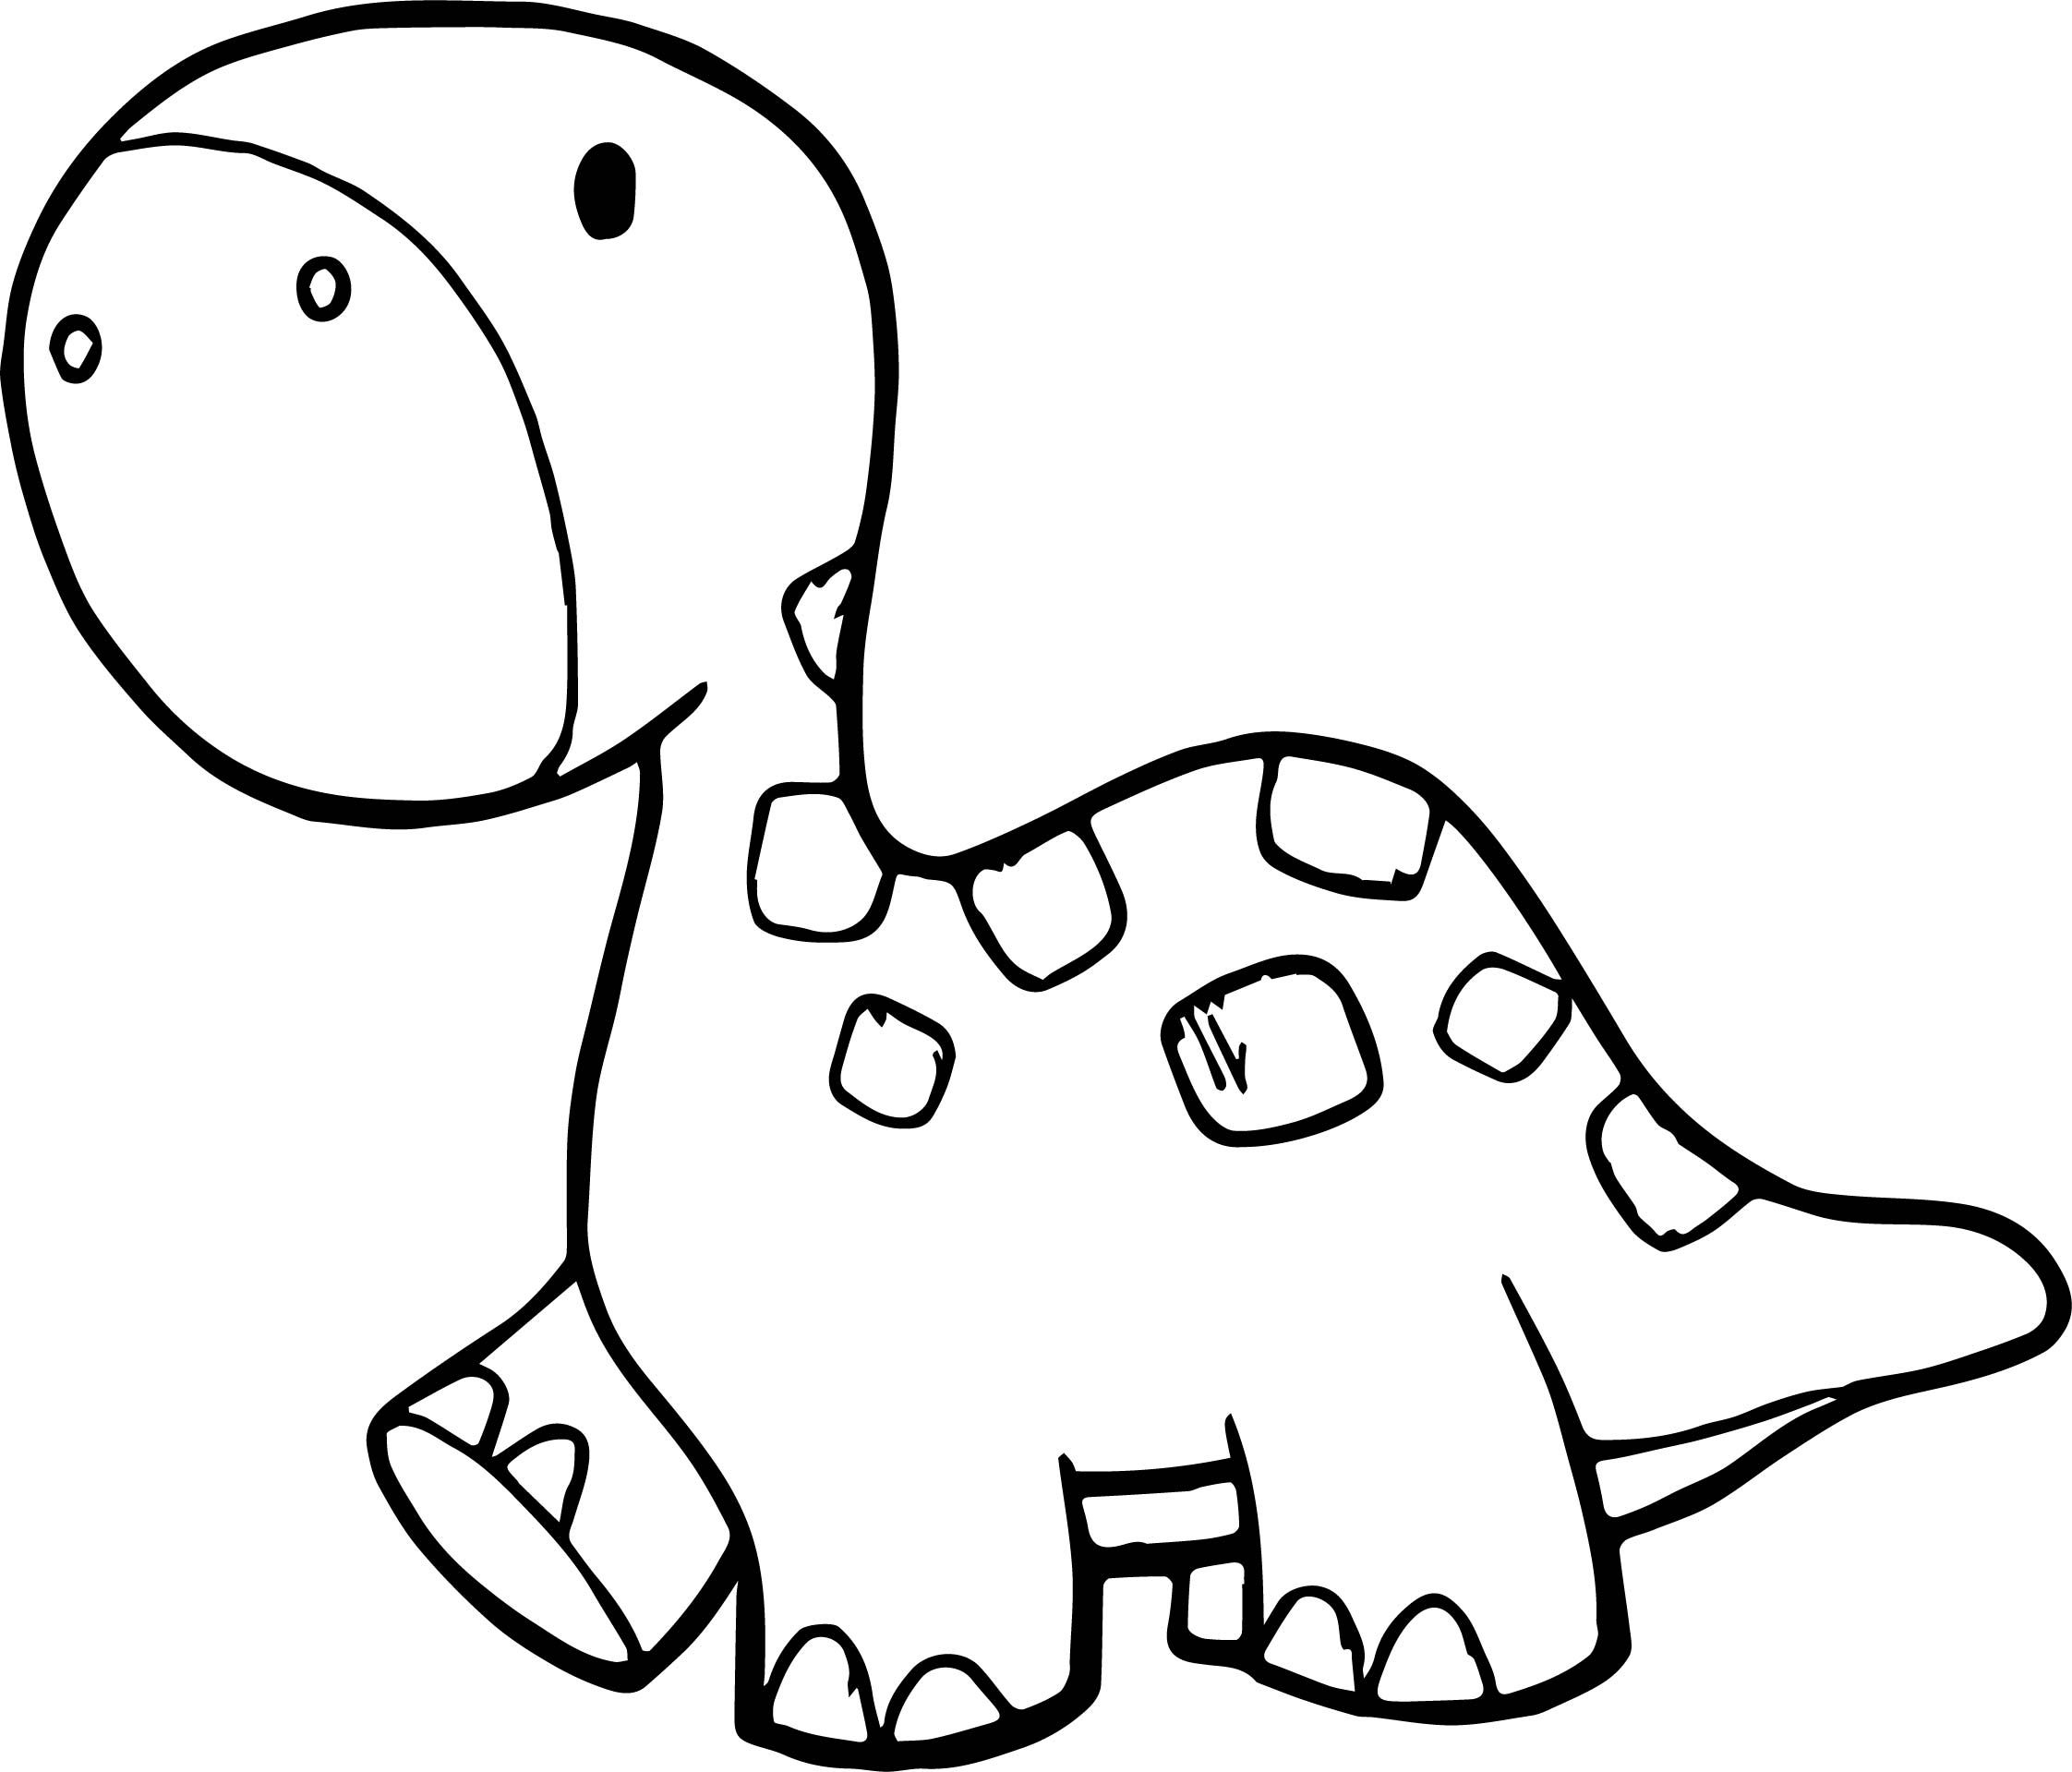 coloring pages for boys baby dinosaur Coloring Pages